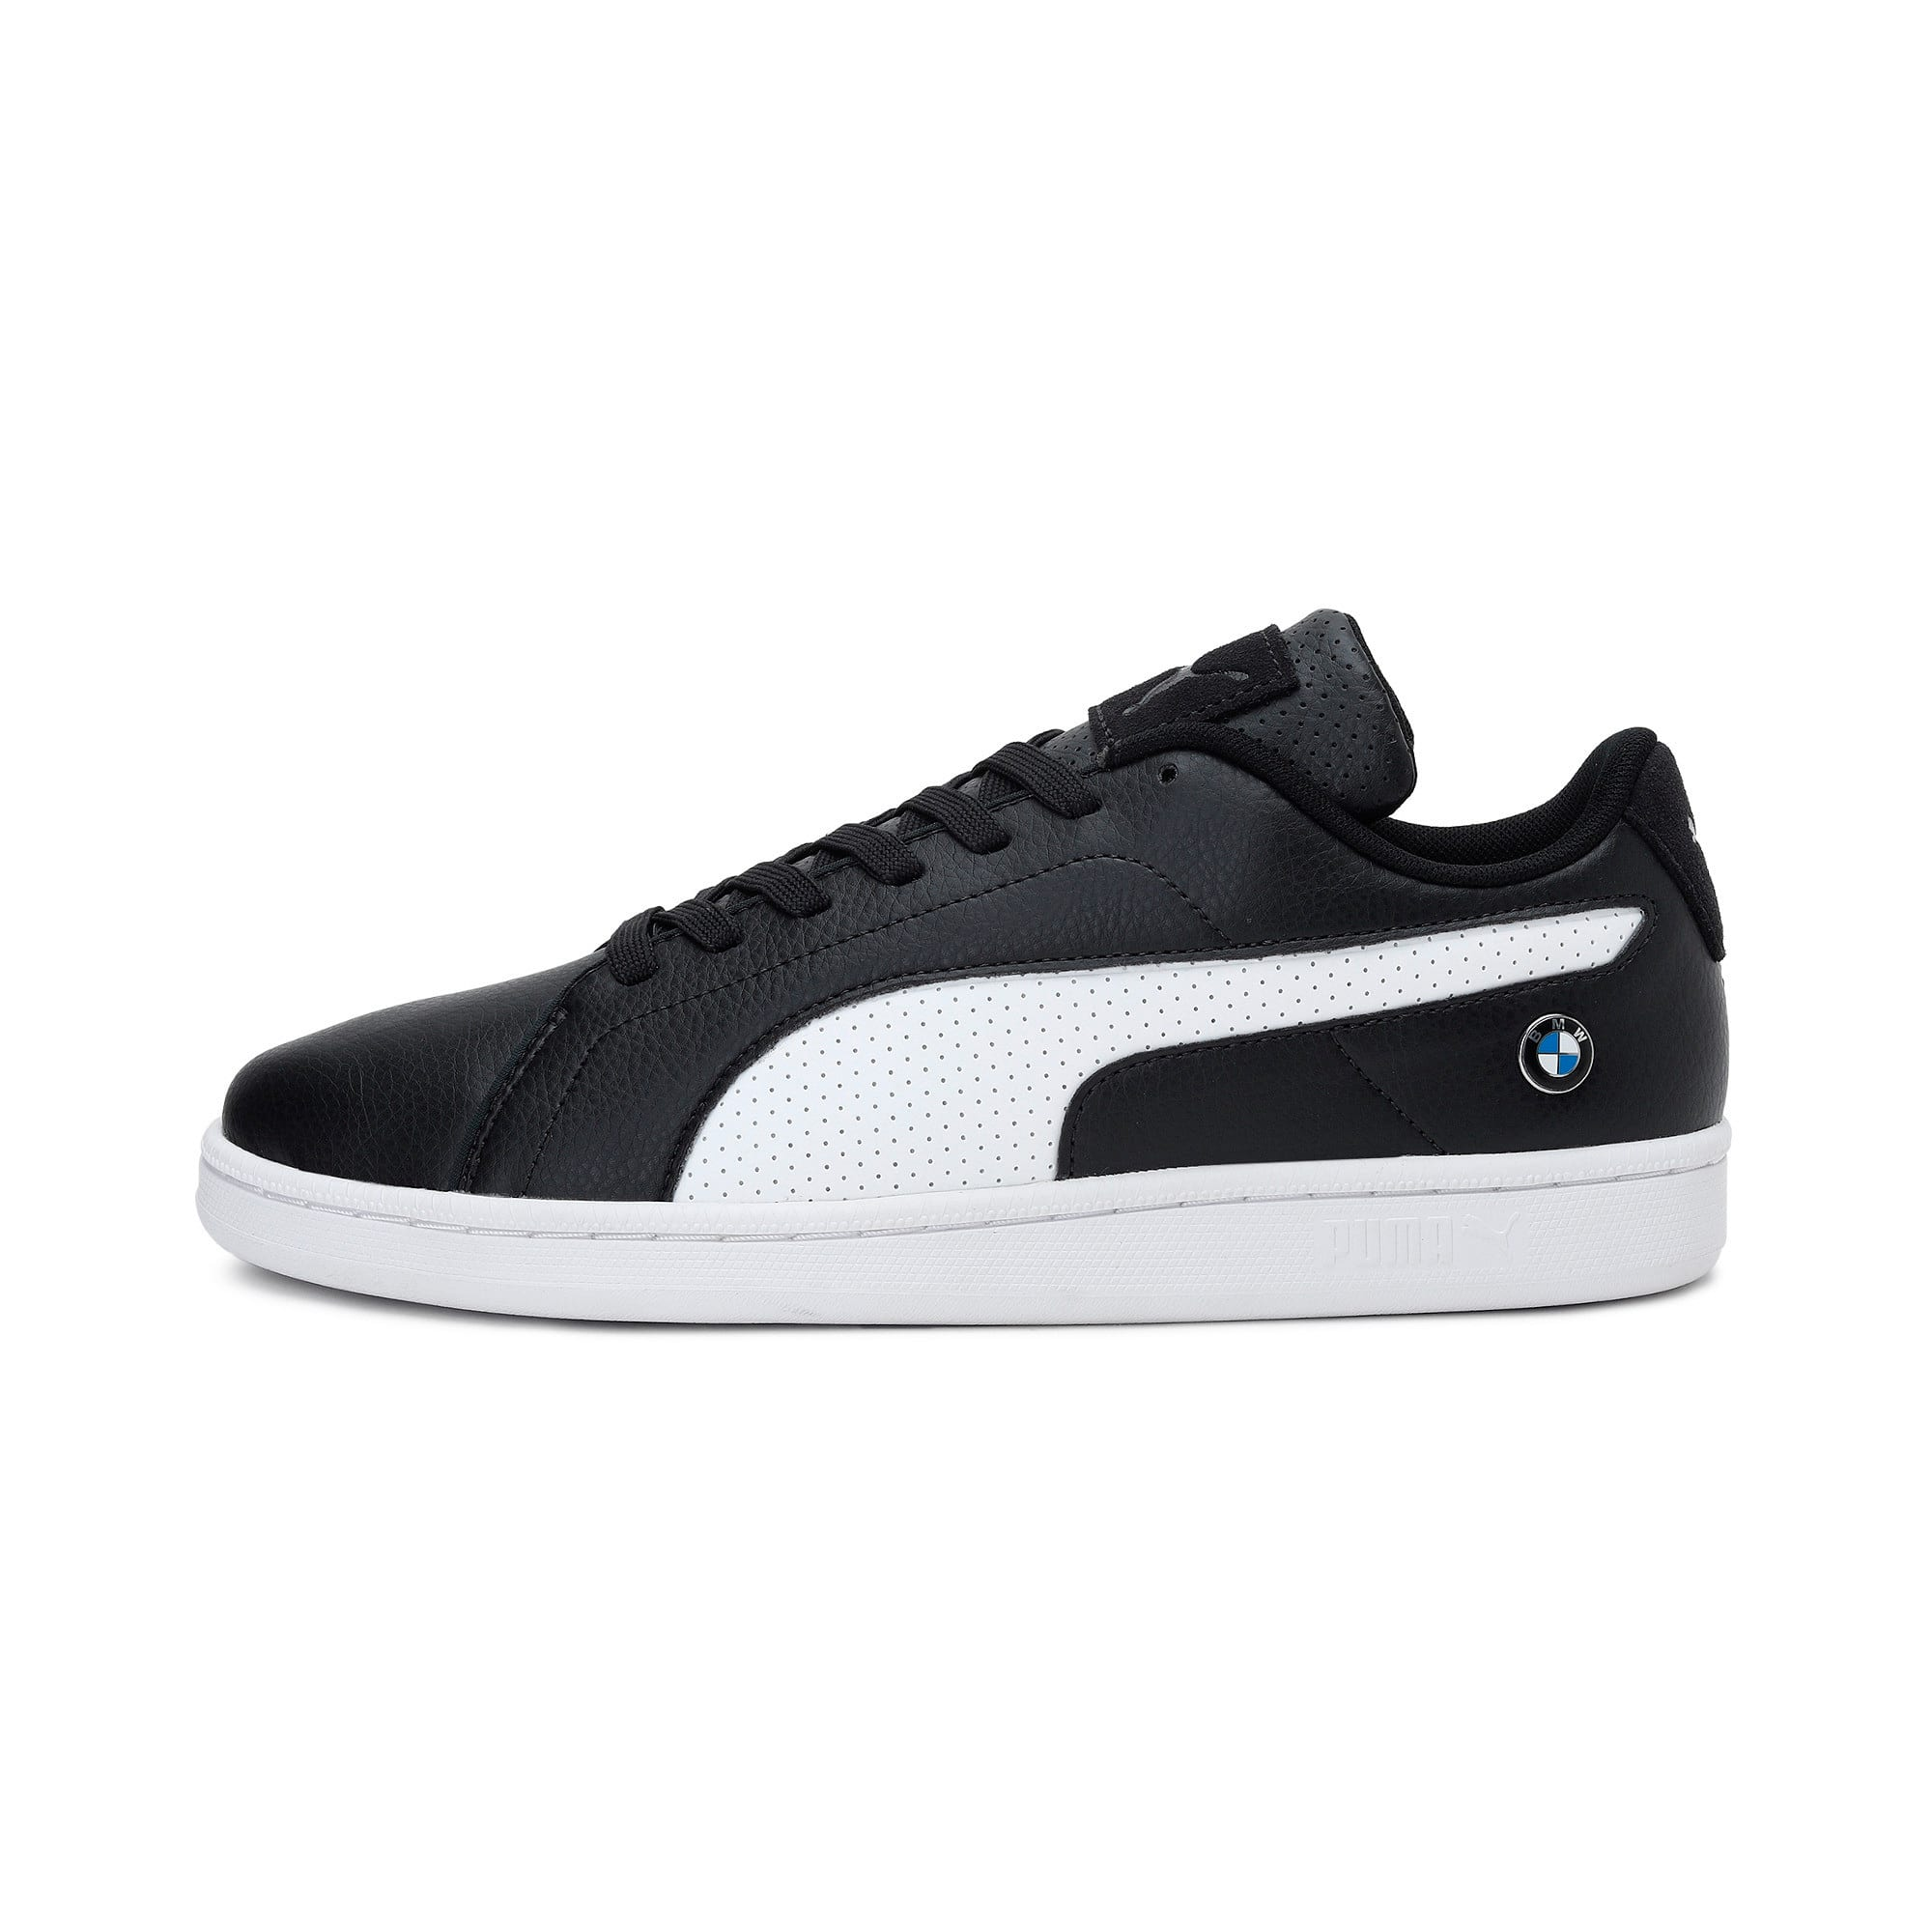 Thumbnail 1 of BMW M Motorsport Court Perf Trainers, Anthracite-Puma White, medium-IND